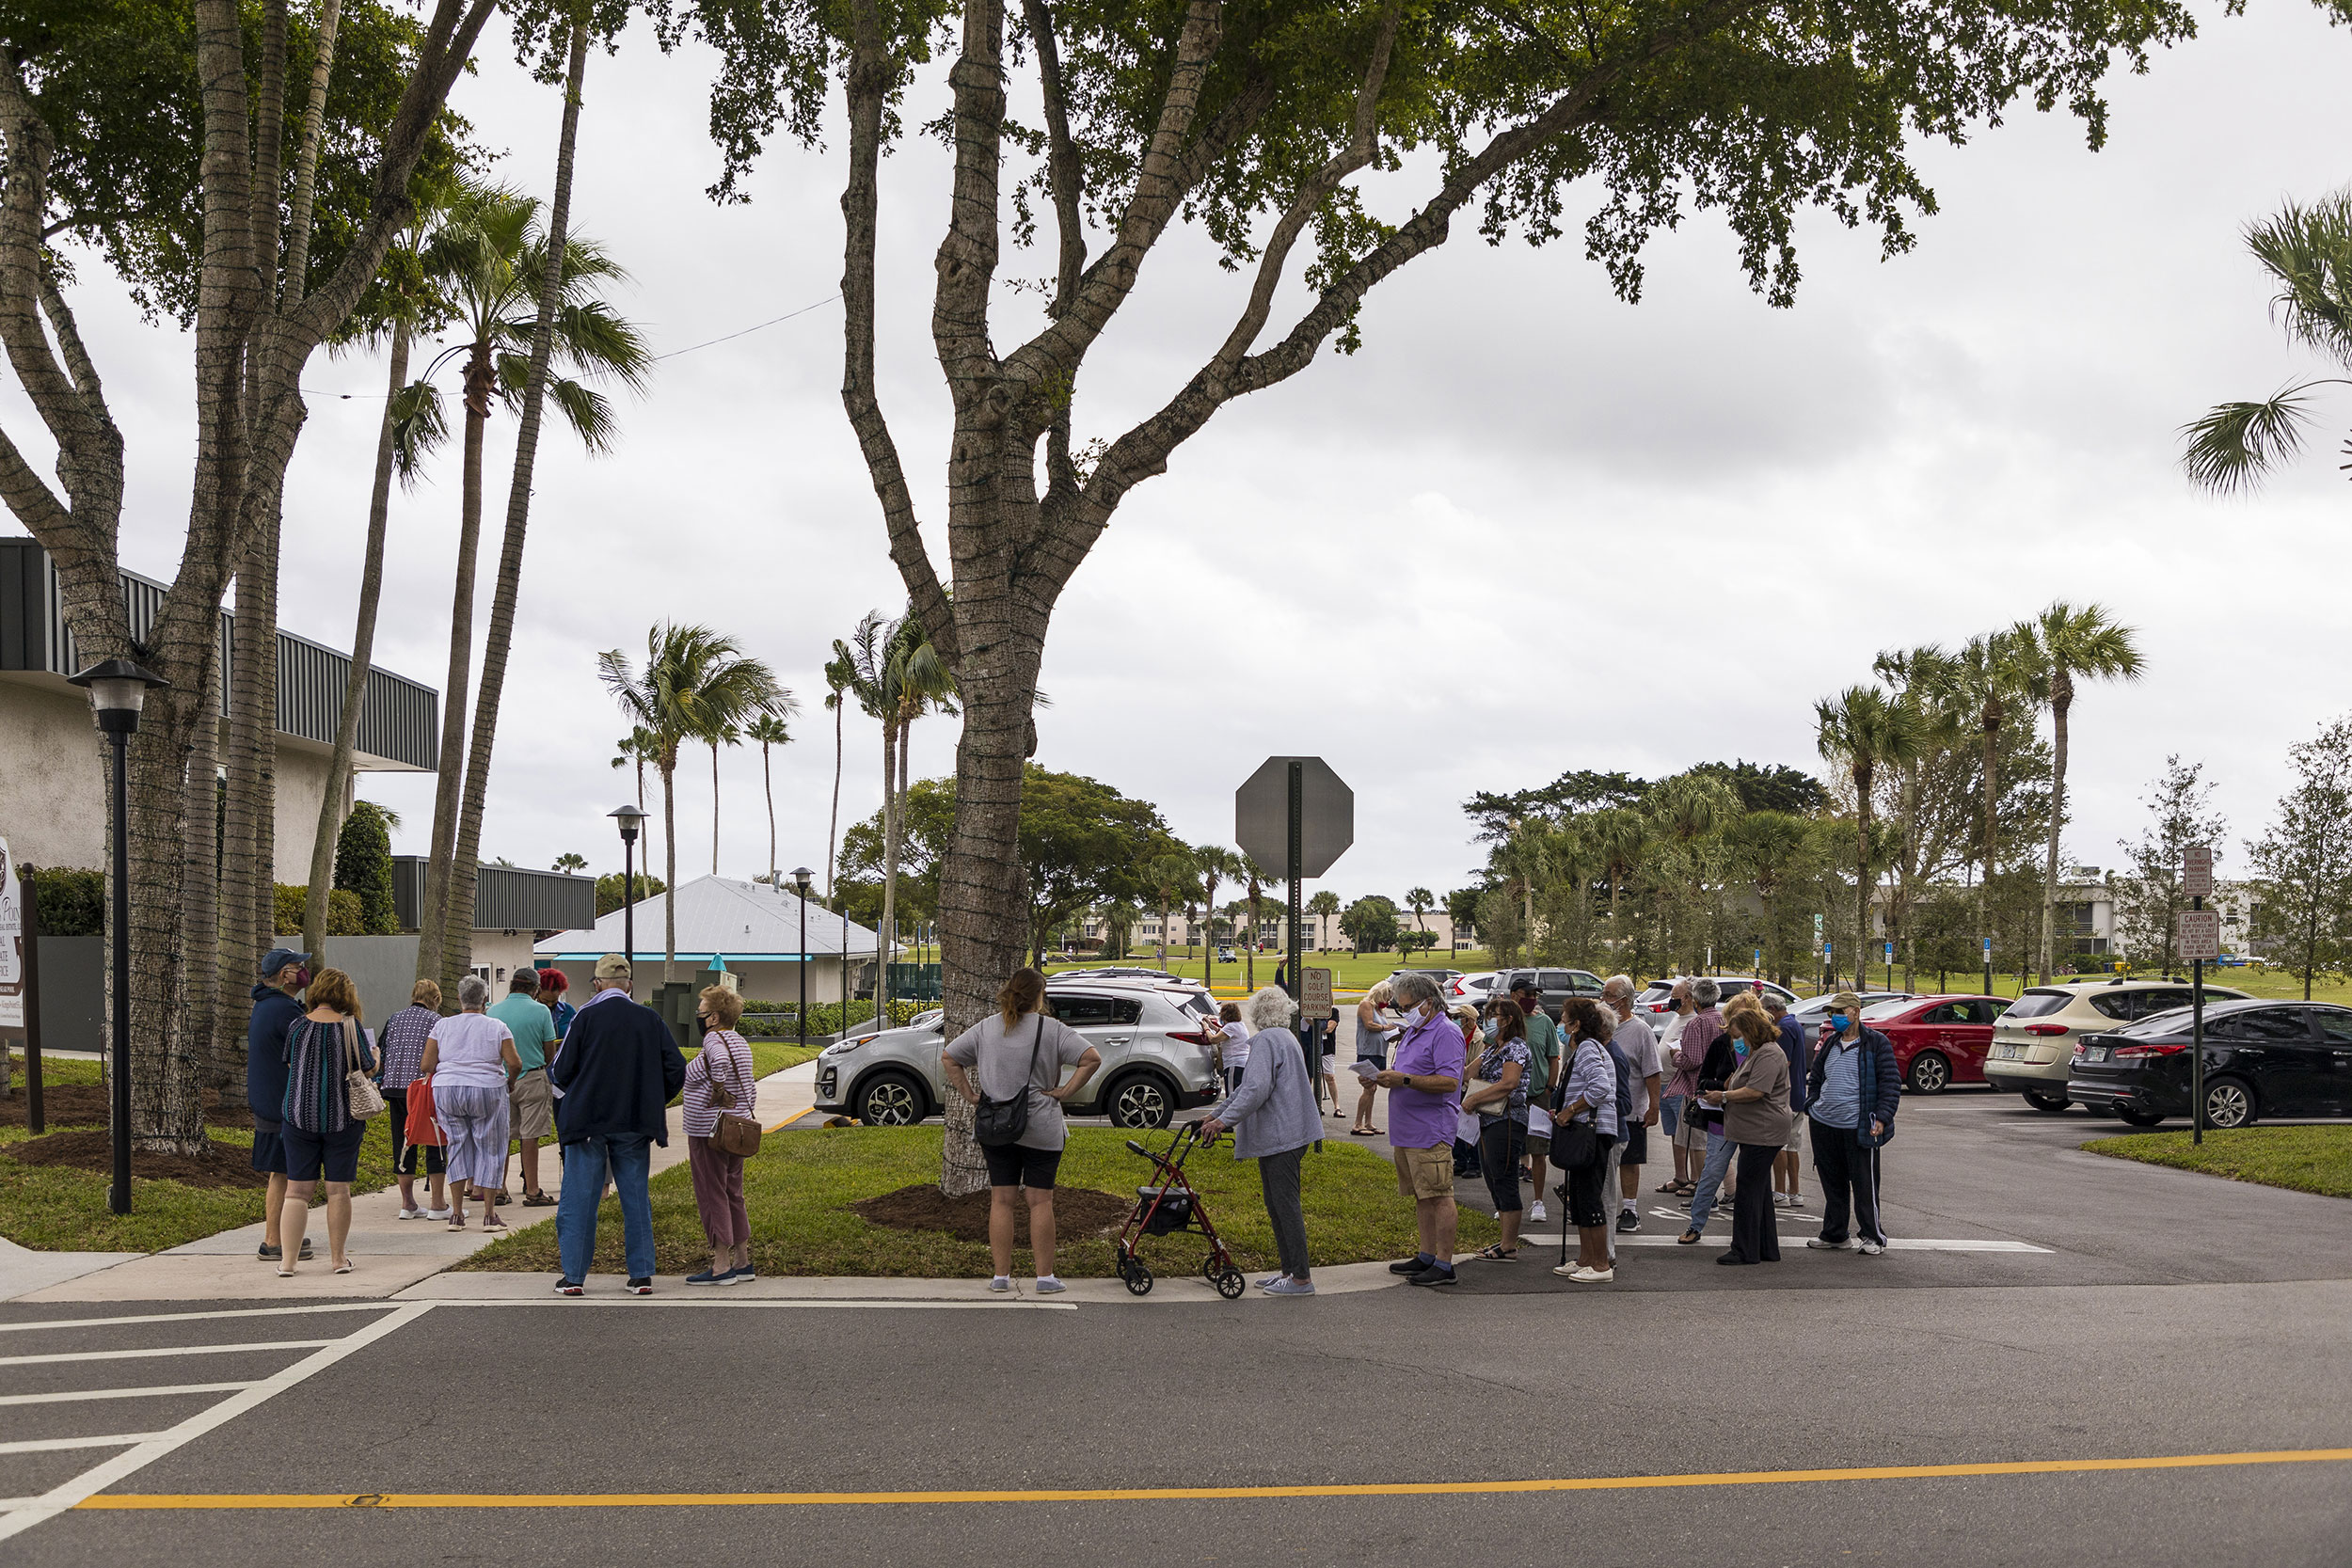 Residents wait in line to receive Covid-19 vaccinations at the King's Point retirement home in Delray Beach, Florida, on December 30.